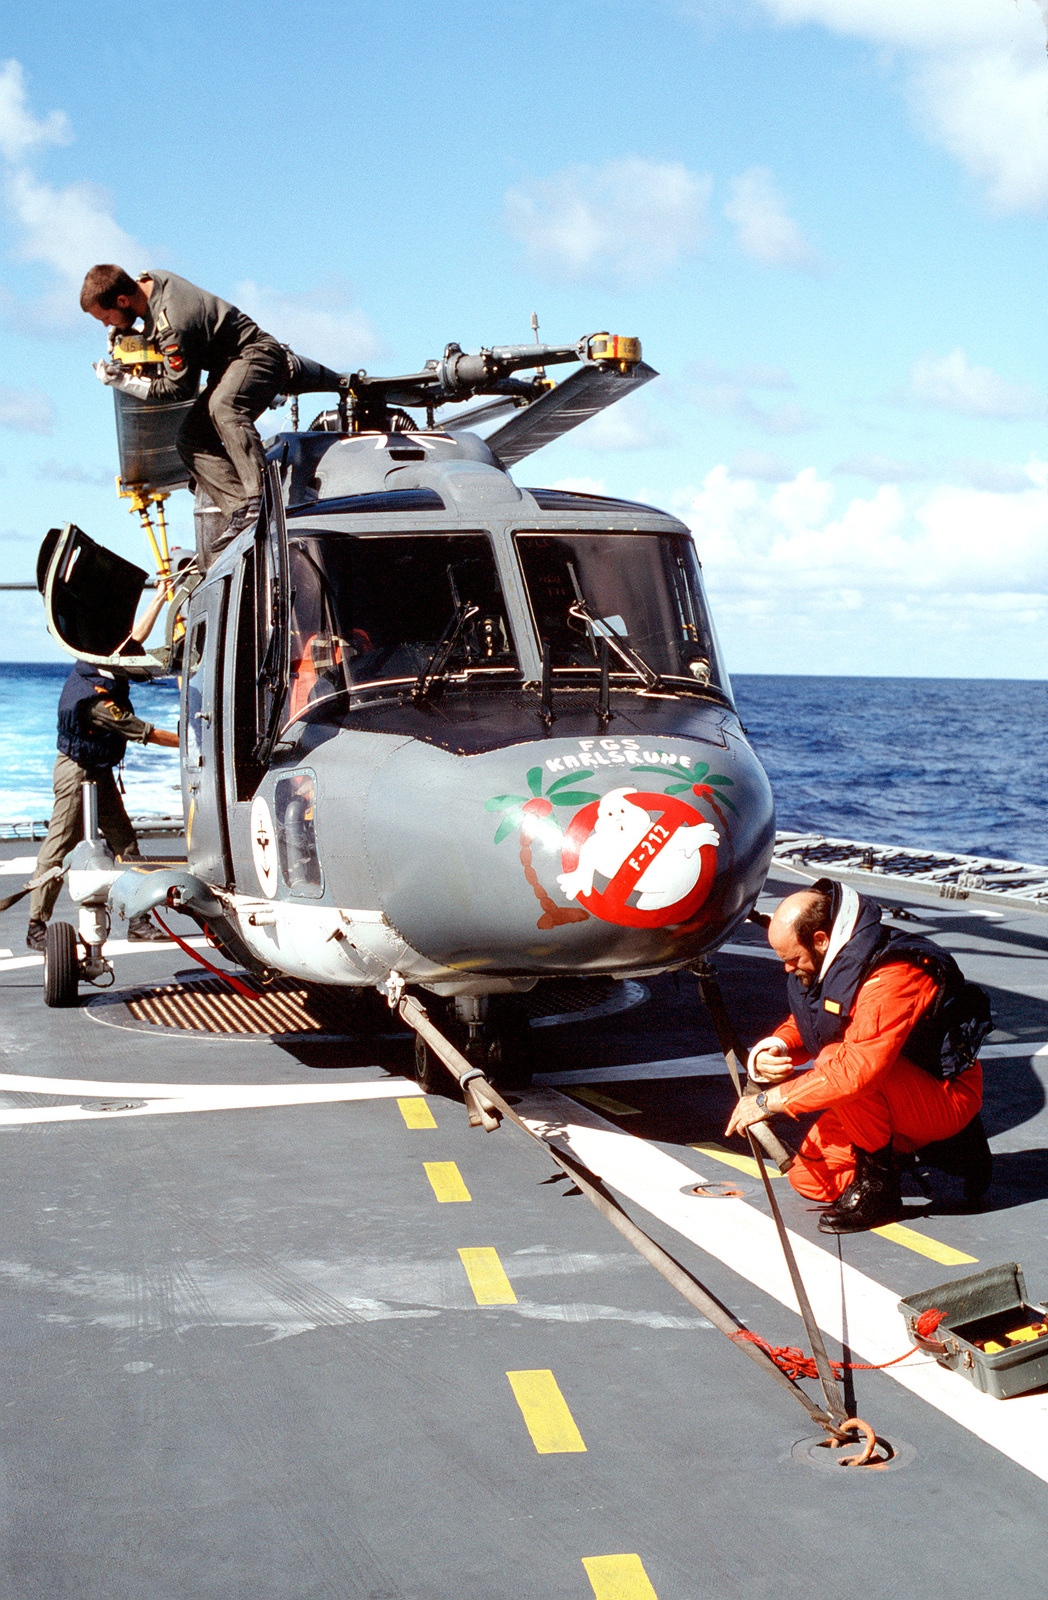 Fgs Security a crewman checks a tie-down strap as two others secure the